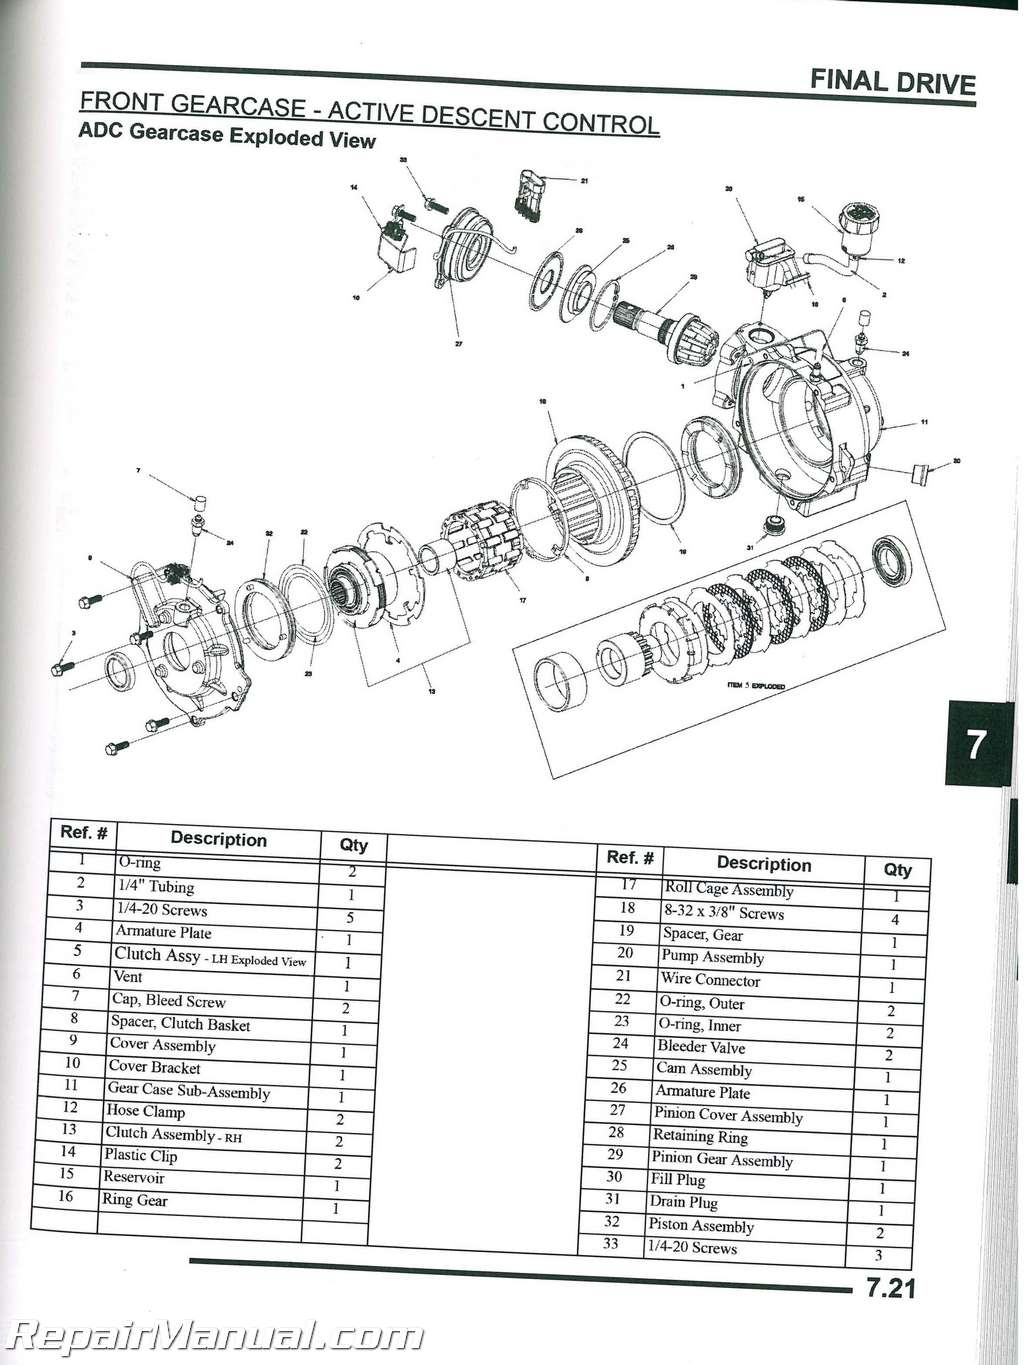 Efi Wiring Diagram Pdf 2008 Sportsman 500 X2 40 Images Polaris Touring Ho Atv Service Manual 004